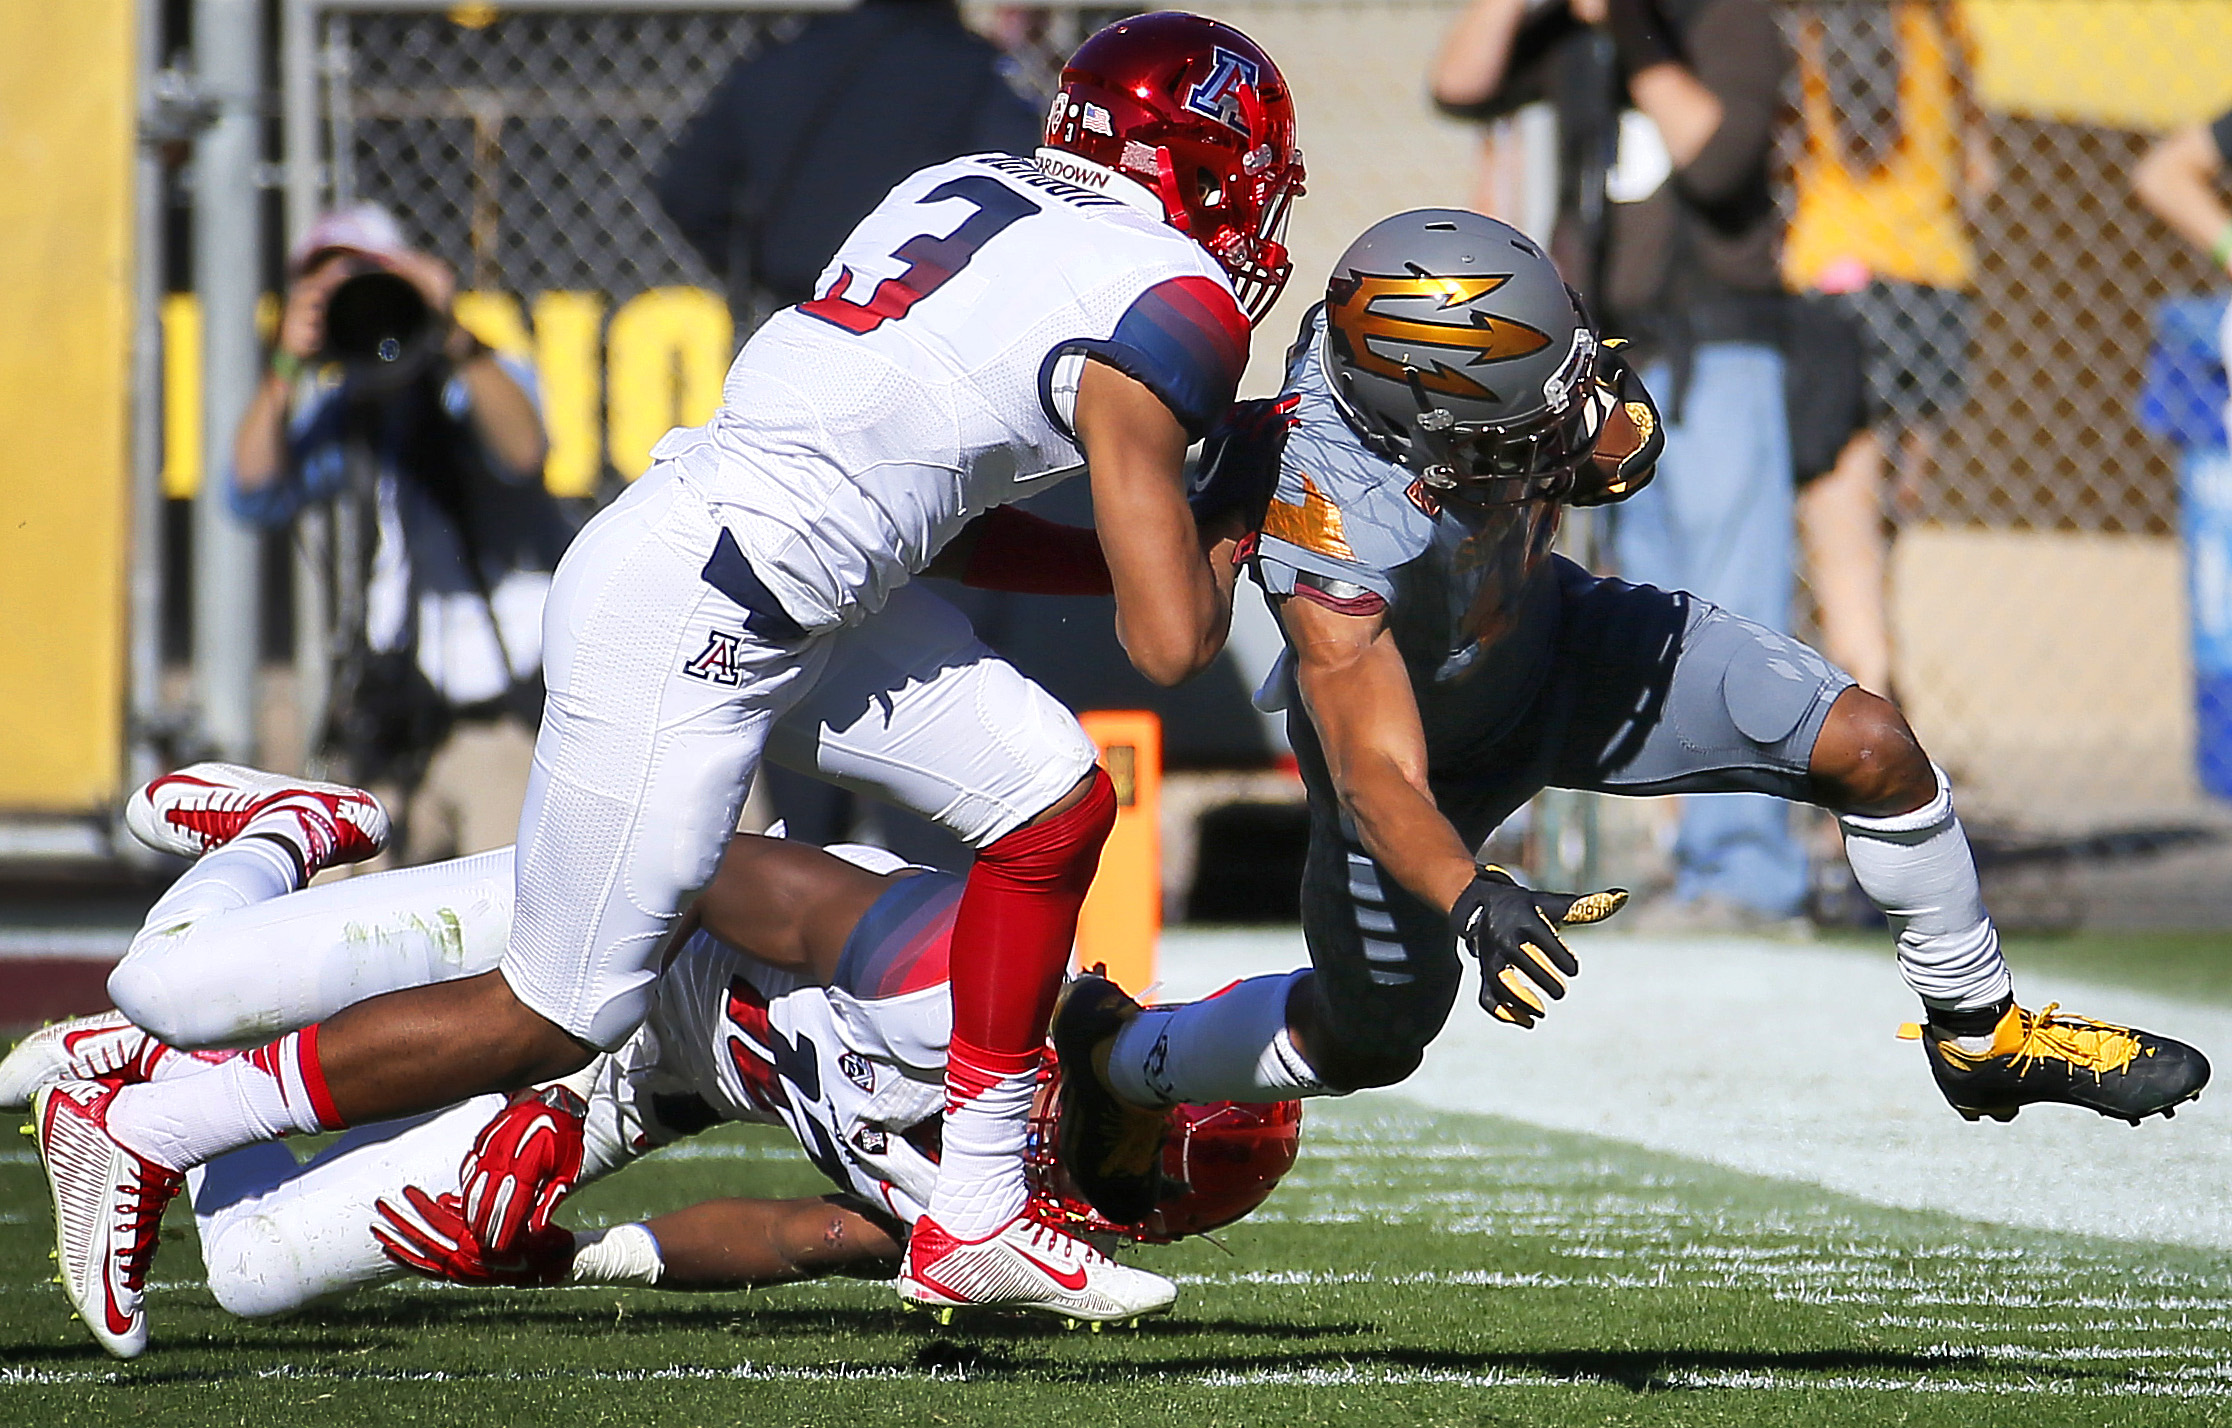 Arizona State running back Demario Richard, right, is knocked out of bounds by Arizona cornerback Cam Denson (3) during the first half of an NCAA college football game Saturday, Nov. 21, 2015, in Tempe, Ariz. (AP Photo/Matt York)